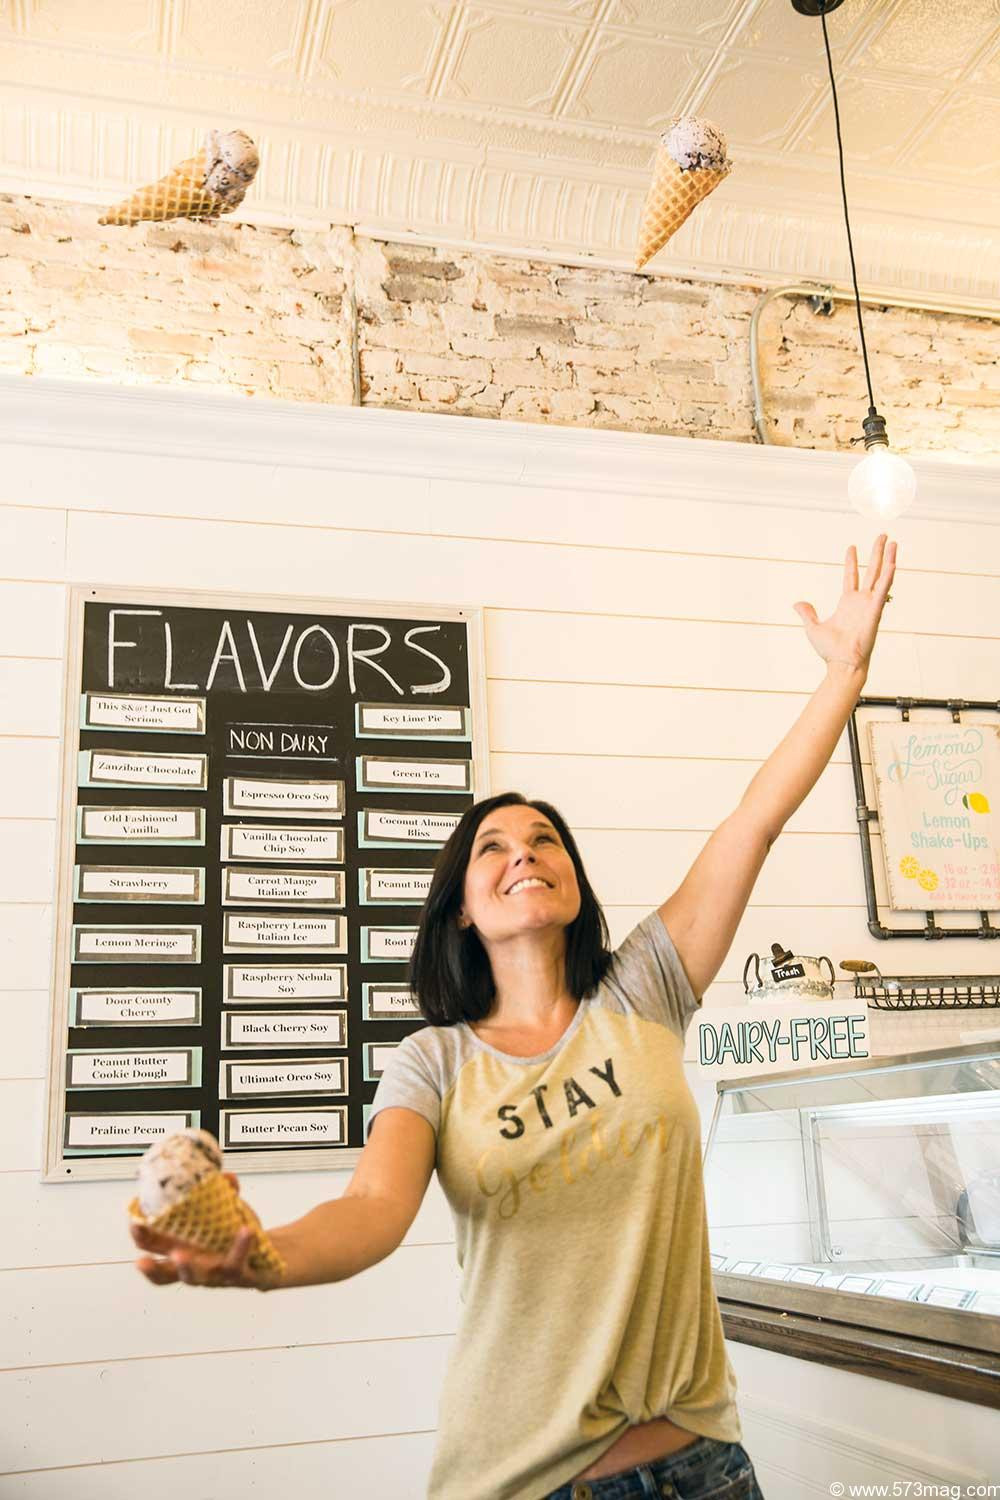 A beautiful woman juggles 3 ice cream cones tossing them high in the air